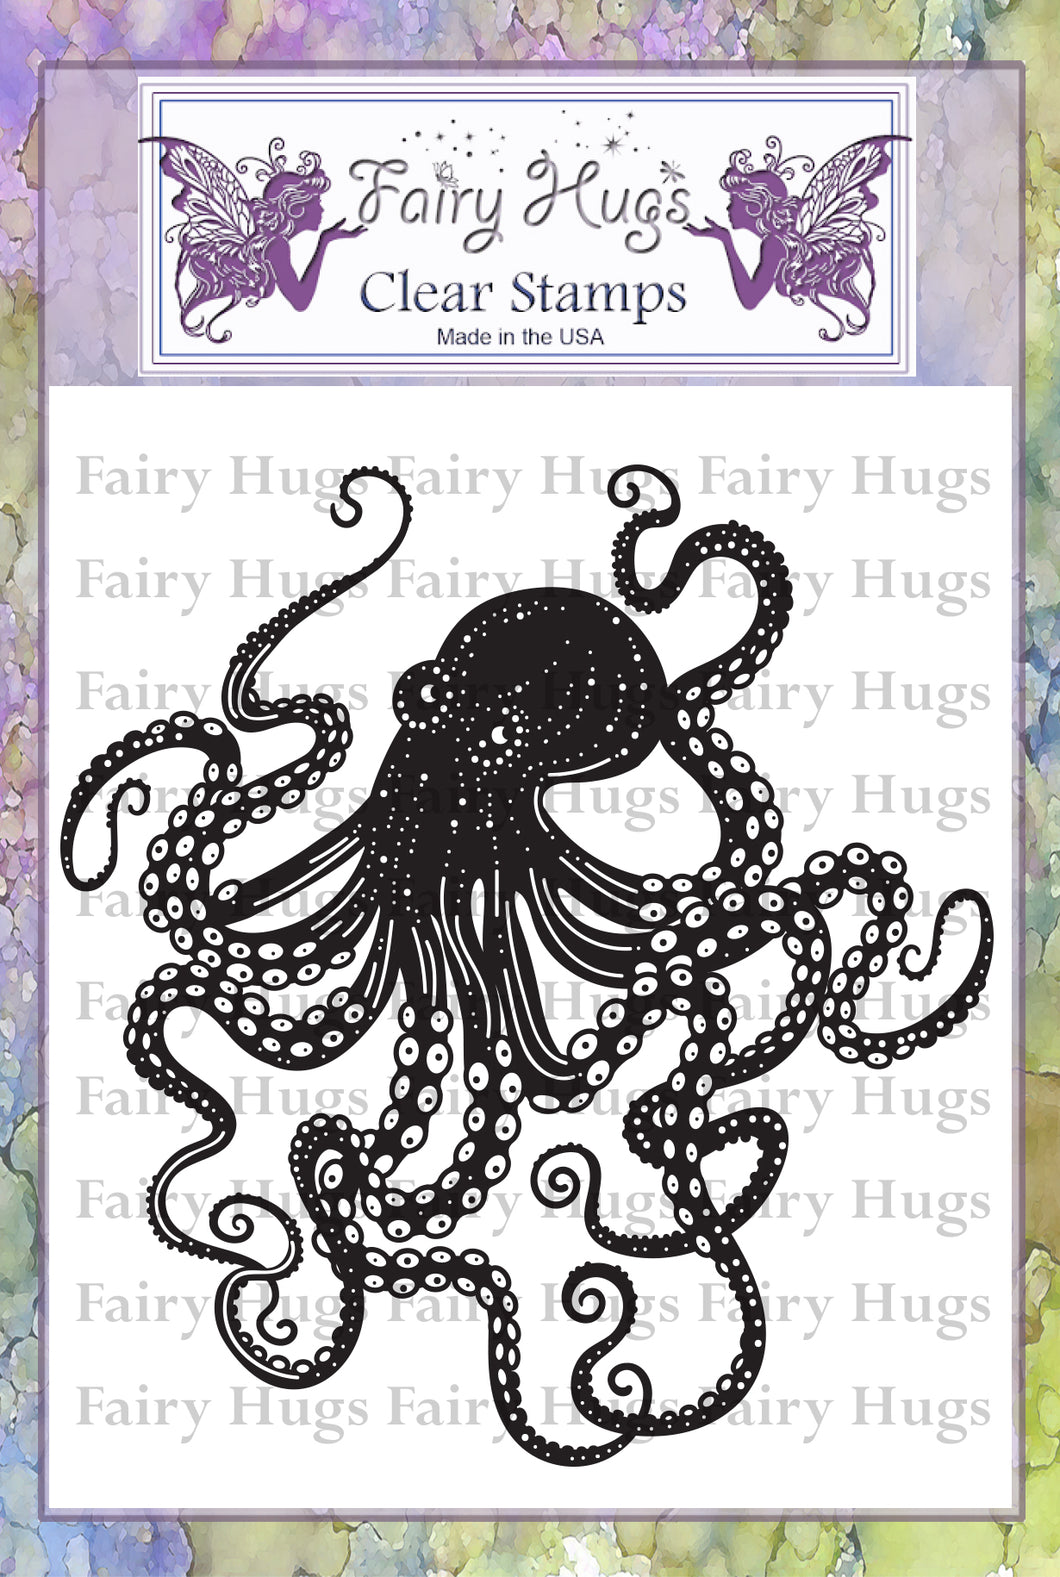 Fairy Hugs Stamps - Oscar